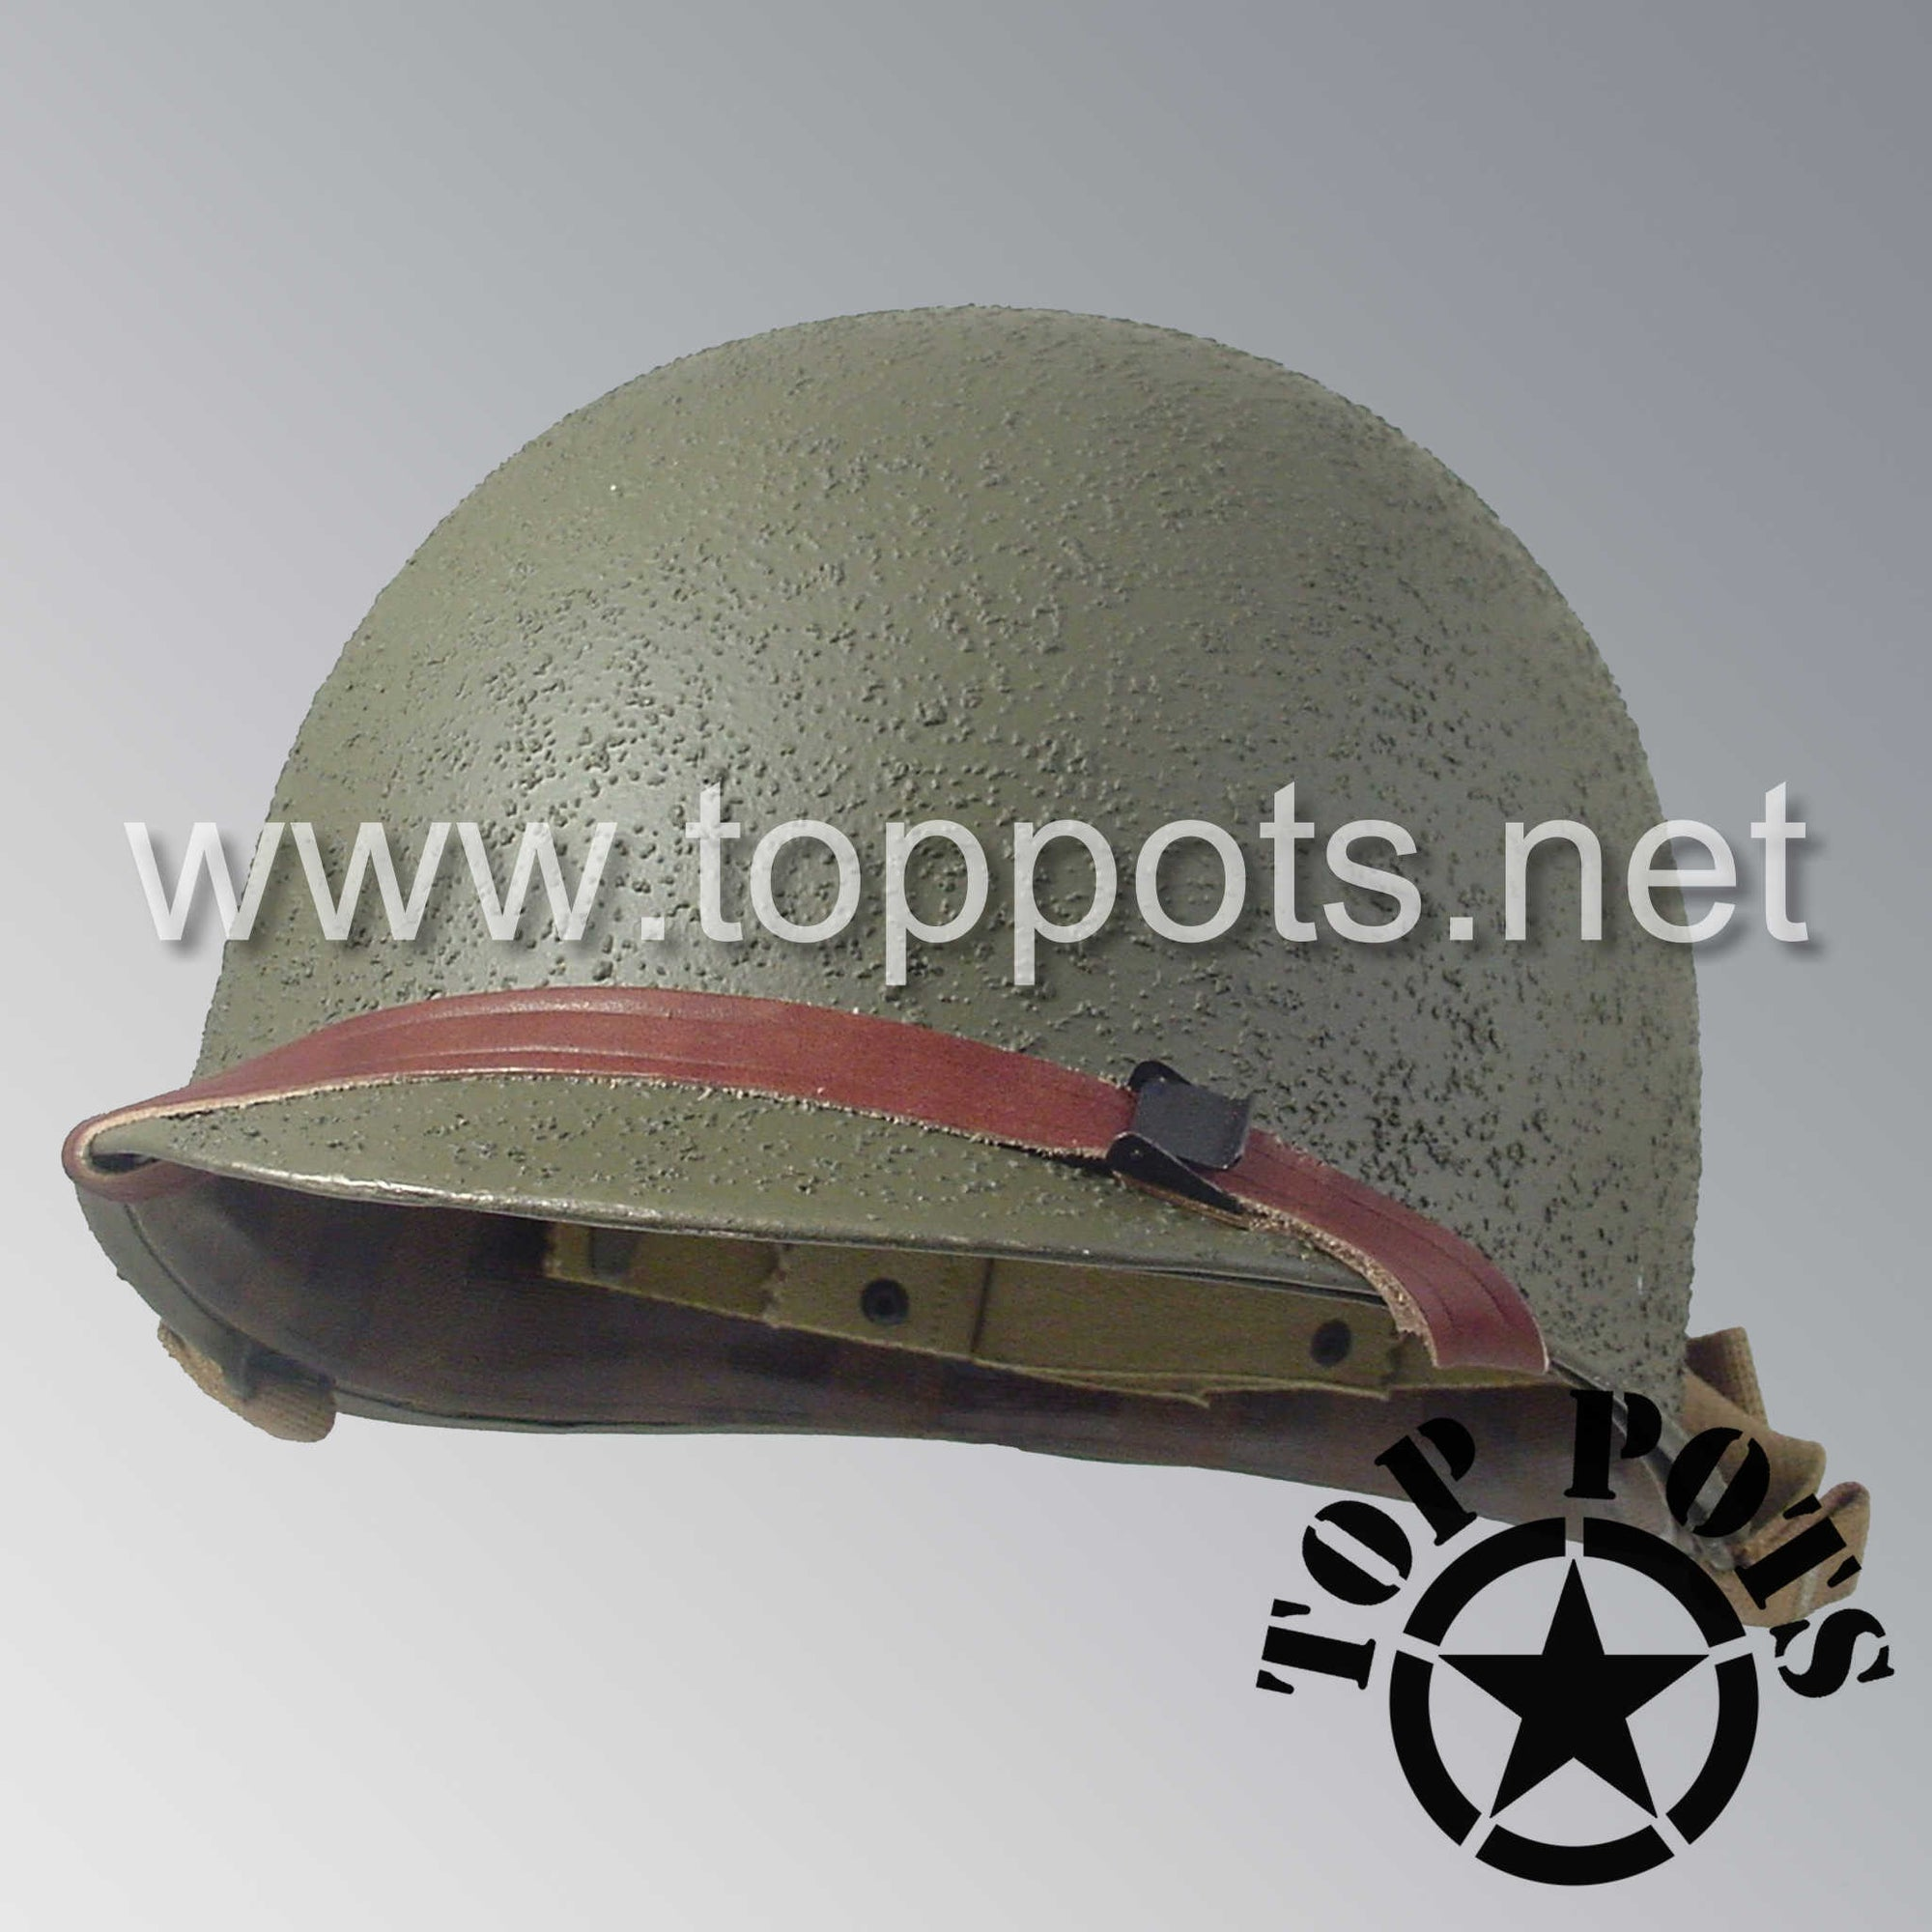 Image 1 of WWII US Army Restored Original M1 Infantry Helmet Swivel Bale Shell and Liner with 2nd Ranger Enlisted Emblem